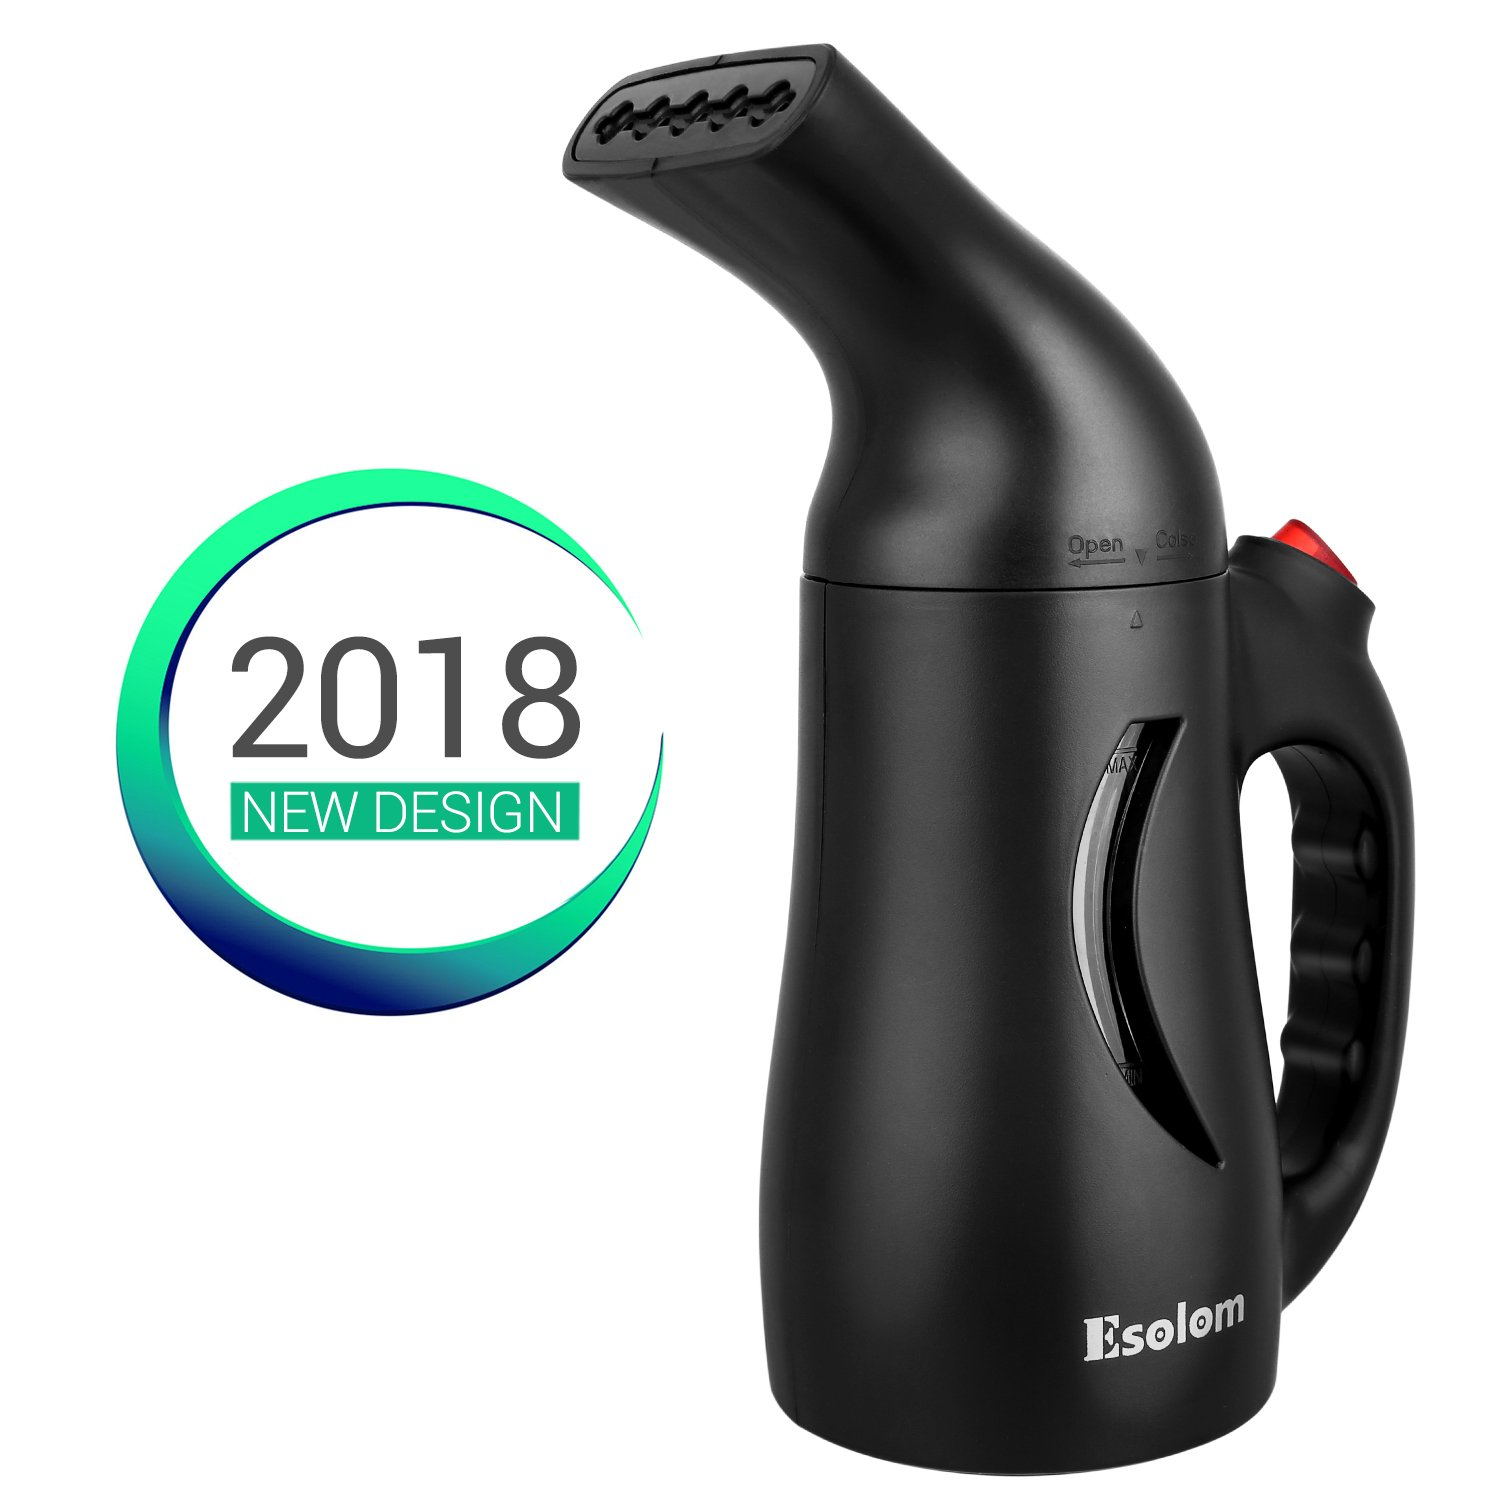 Handheld Clothes Steamer, ESOLOM Portable Travel Garment Steamer for Clothes Hand Steamer Wrinkle Remover with Automatic Shut-off and Fast Heat-up Function Safe Use for Travel and Home, 130ml-Black